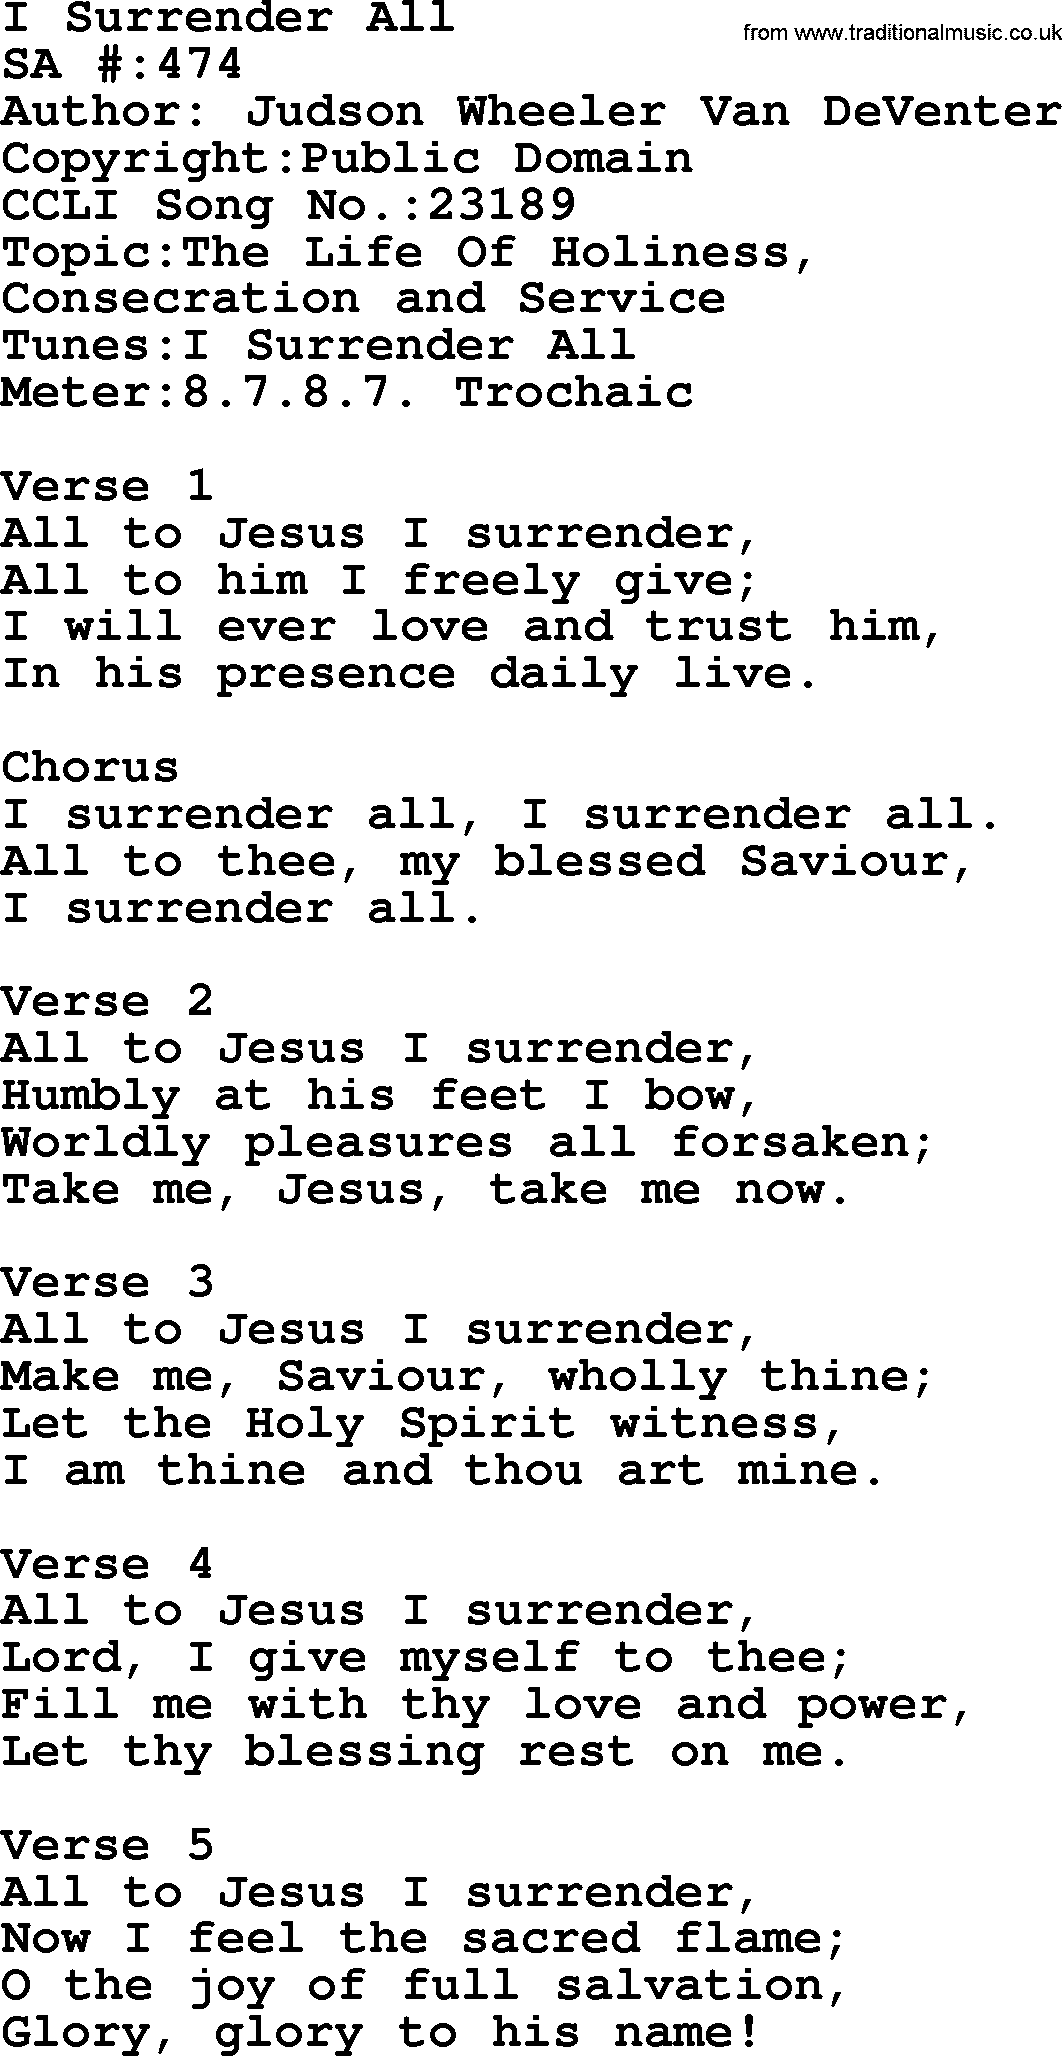 I SURRENDER ALL CHORDS (ver 10) by Misc Praise Songs